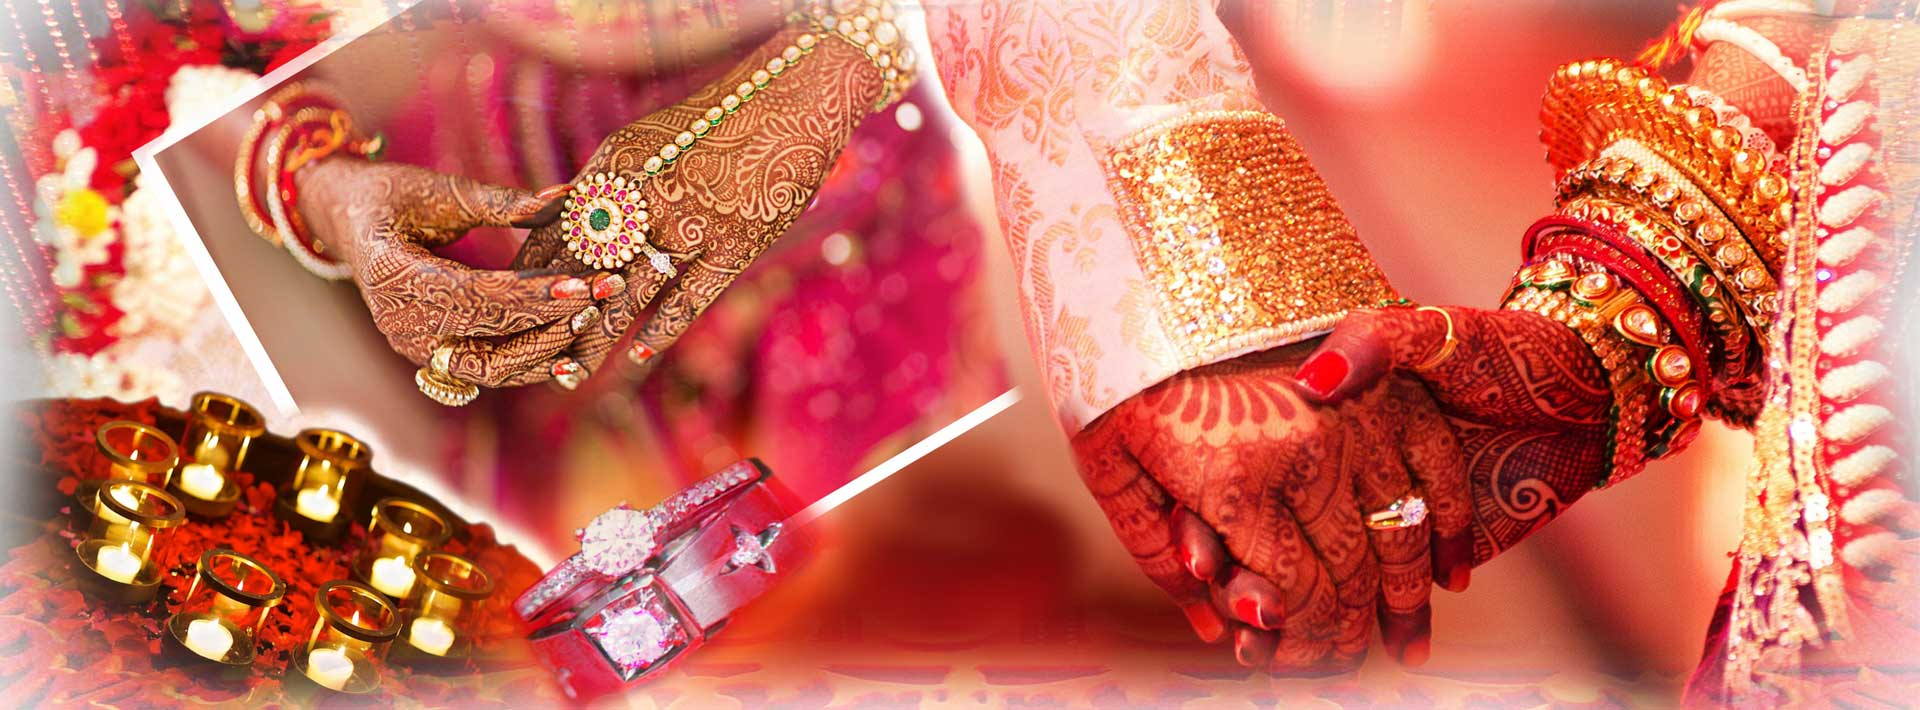 Indian matrimonial service dubai